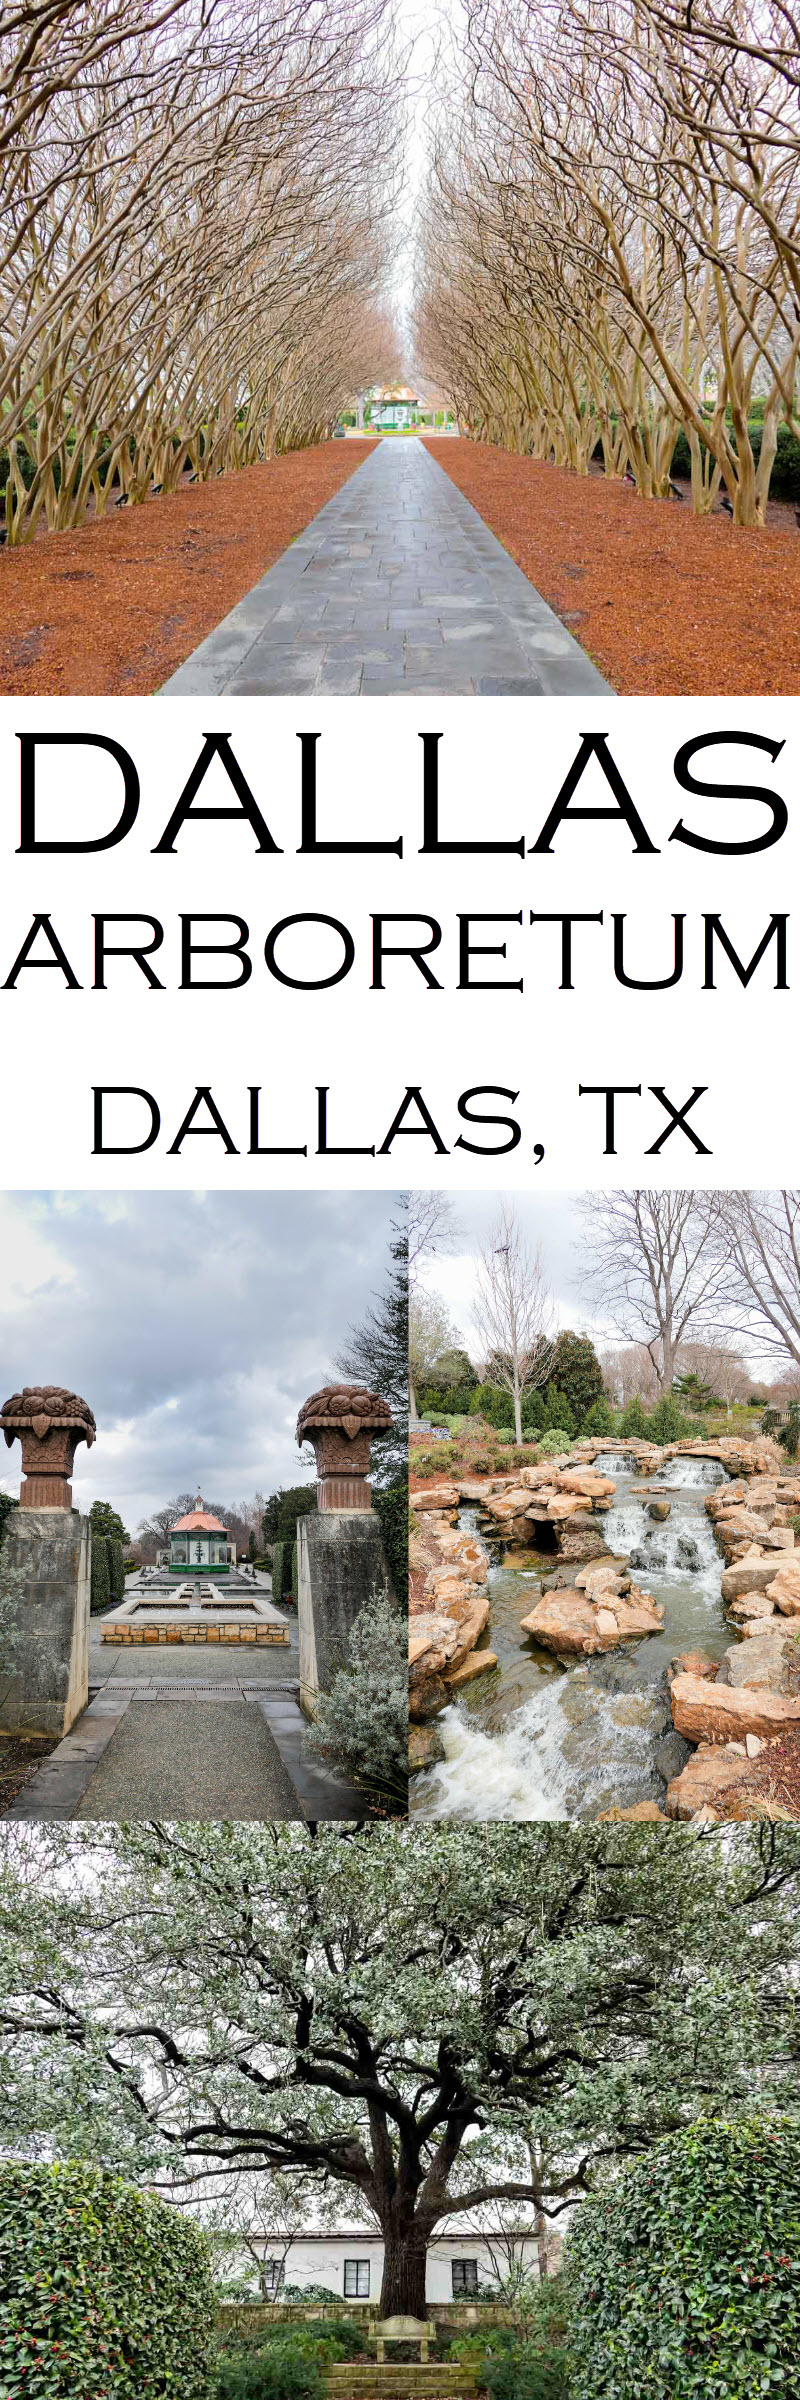 Dallas Arboretum + Botanical Gardens Photos + Review #lpworldtravels #texas #dallas #arboretums #botanicalgarden #travel #travelblog #travelblogger #travelwriter #travelguide